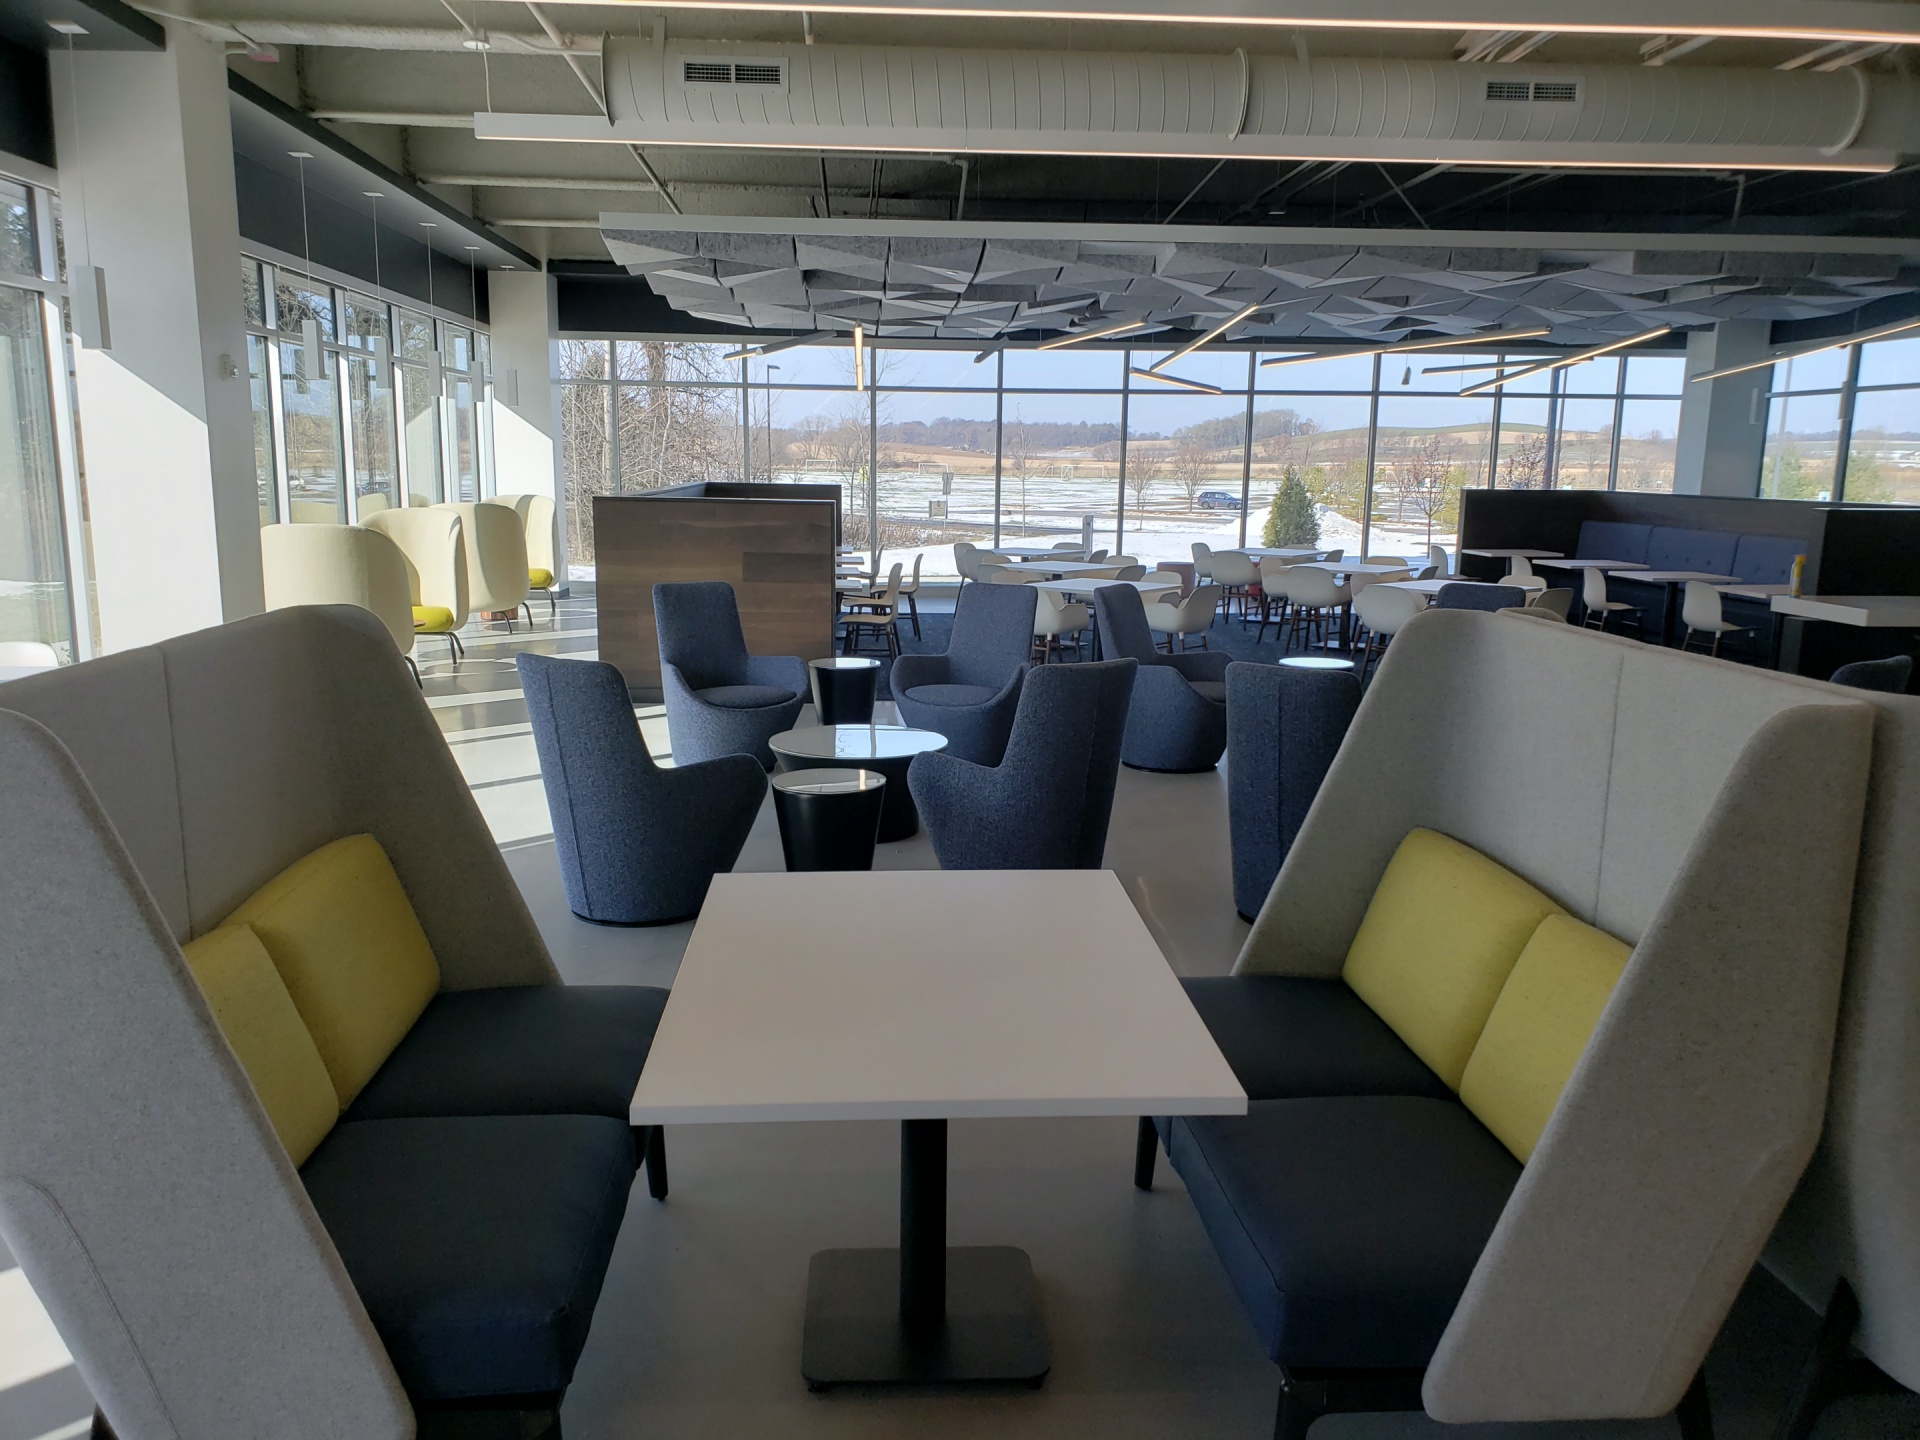 table and booths in an office